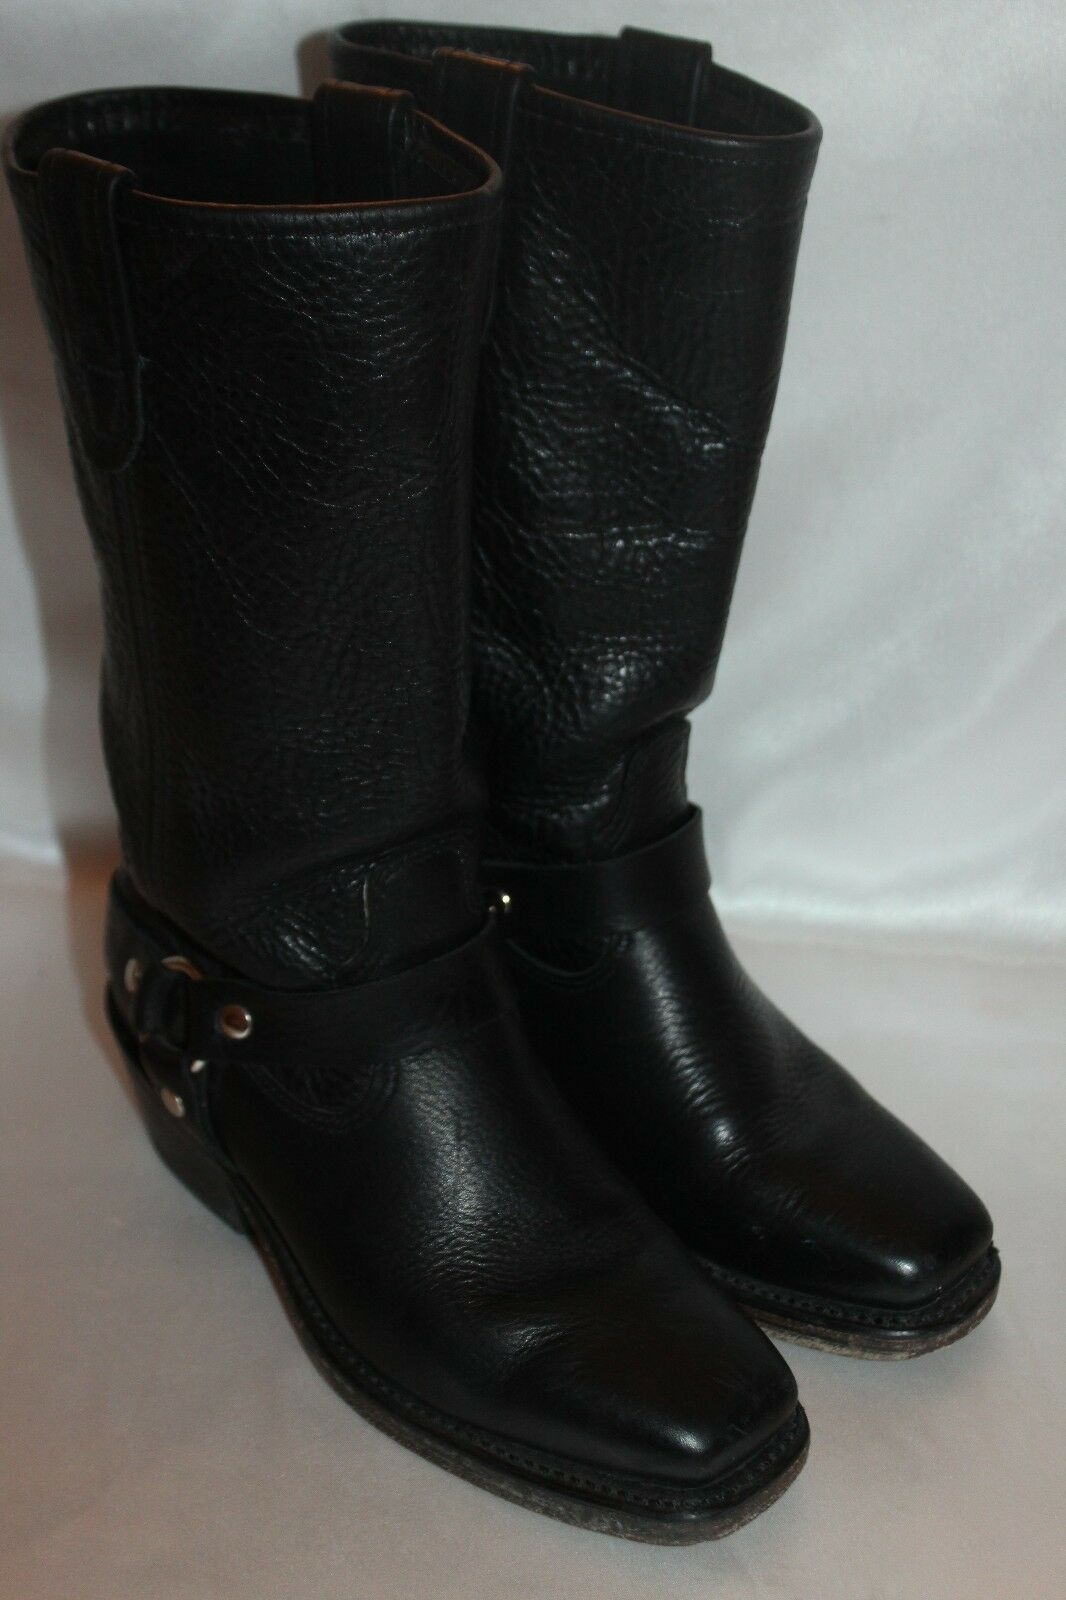 DOUBLE H Boot Company Black Leather Harness Square Toe Western Cowboy Boots 6.5